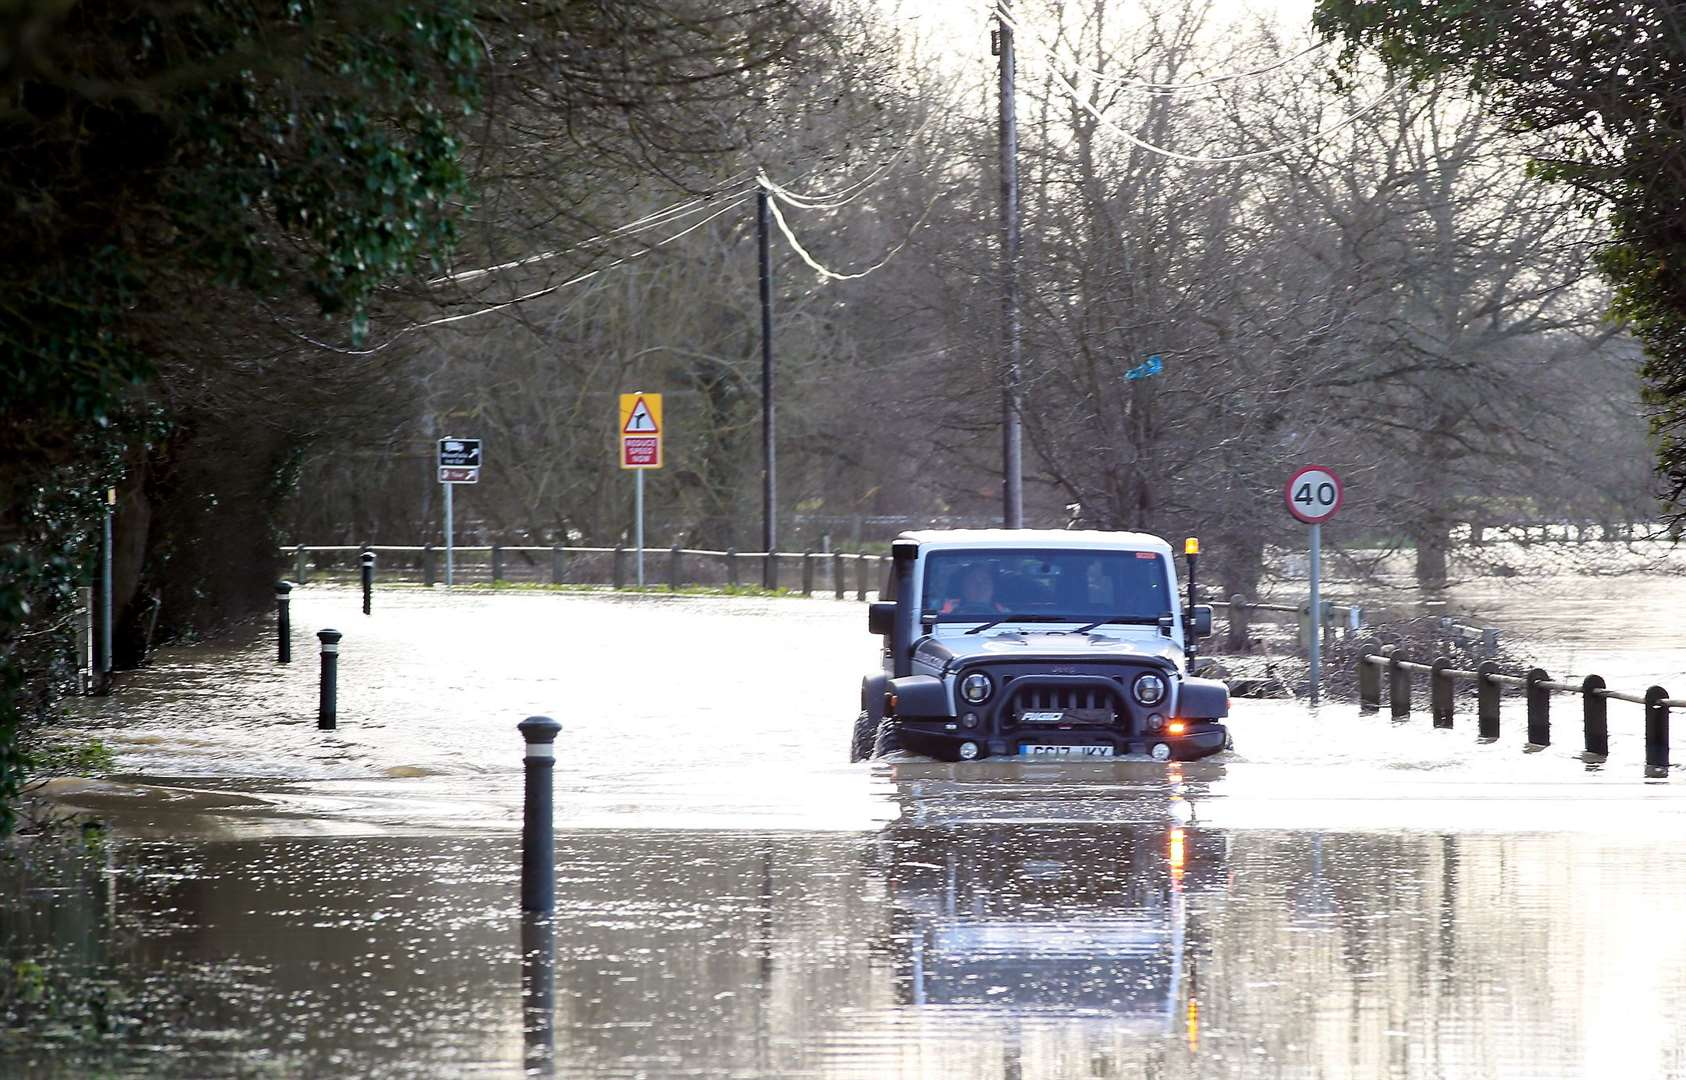 Flooding in Yalding